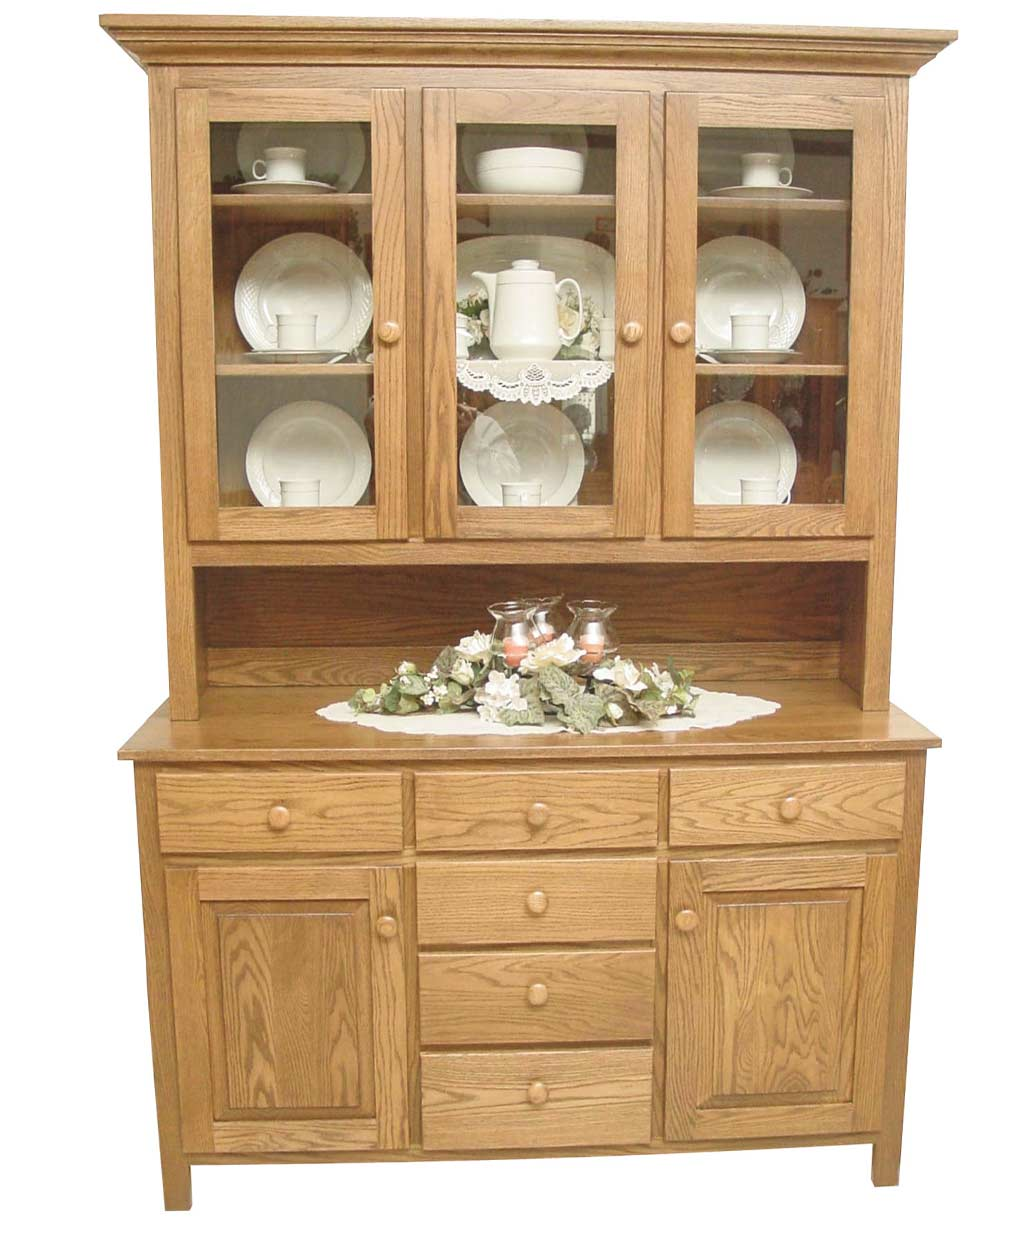 shaker hutch amish direct furniture. Black Bedroom Furniture Sets. Home Design Ideas